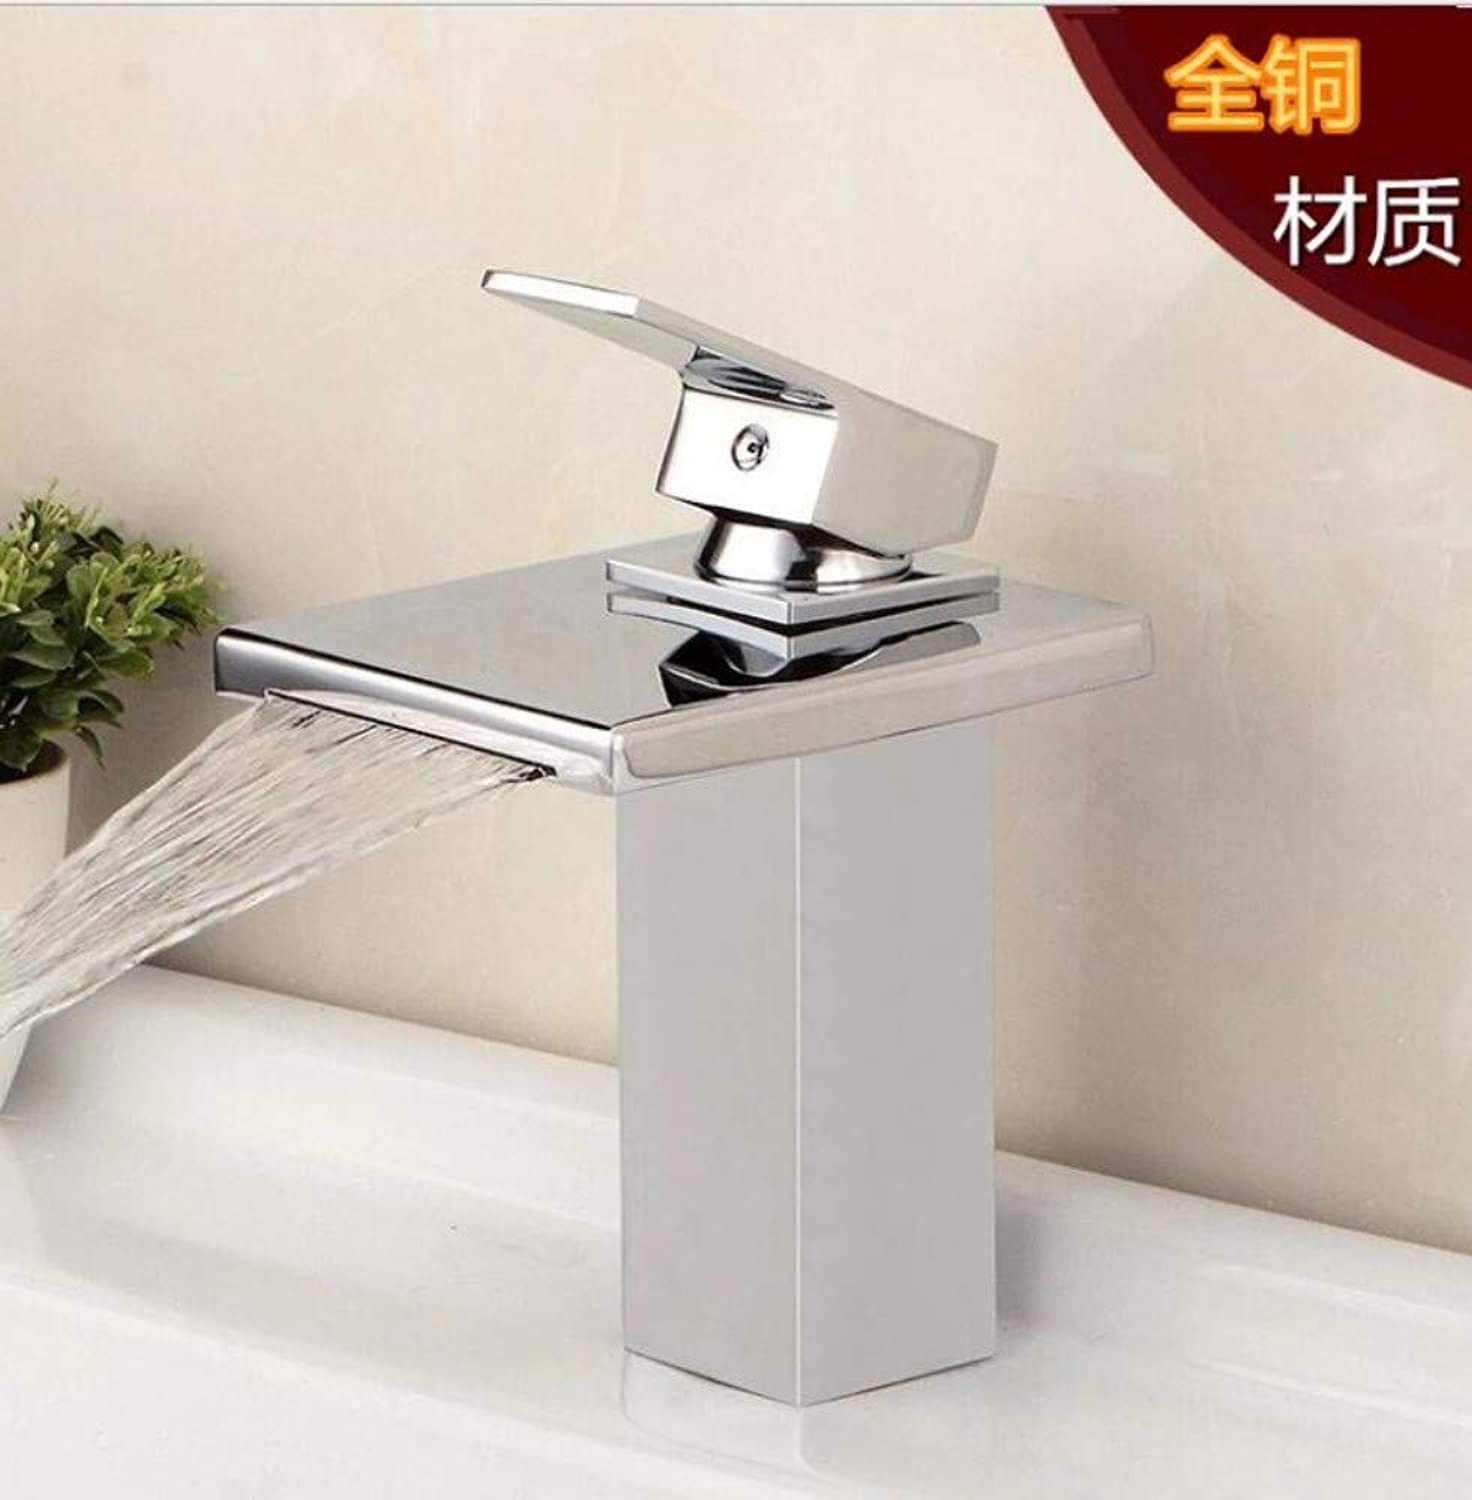 Bathroom Sink Basin Lever Mixer Tap Copper Sifang Falls Faucet Facewash Basin Faucet Single Wrench Type Cold and Hot Faucet